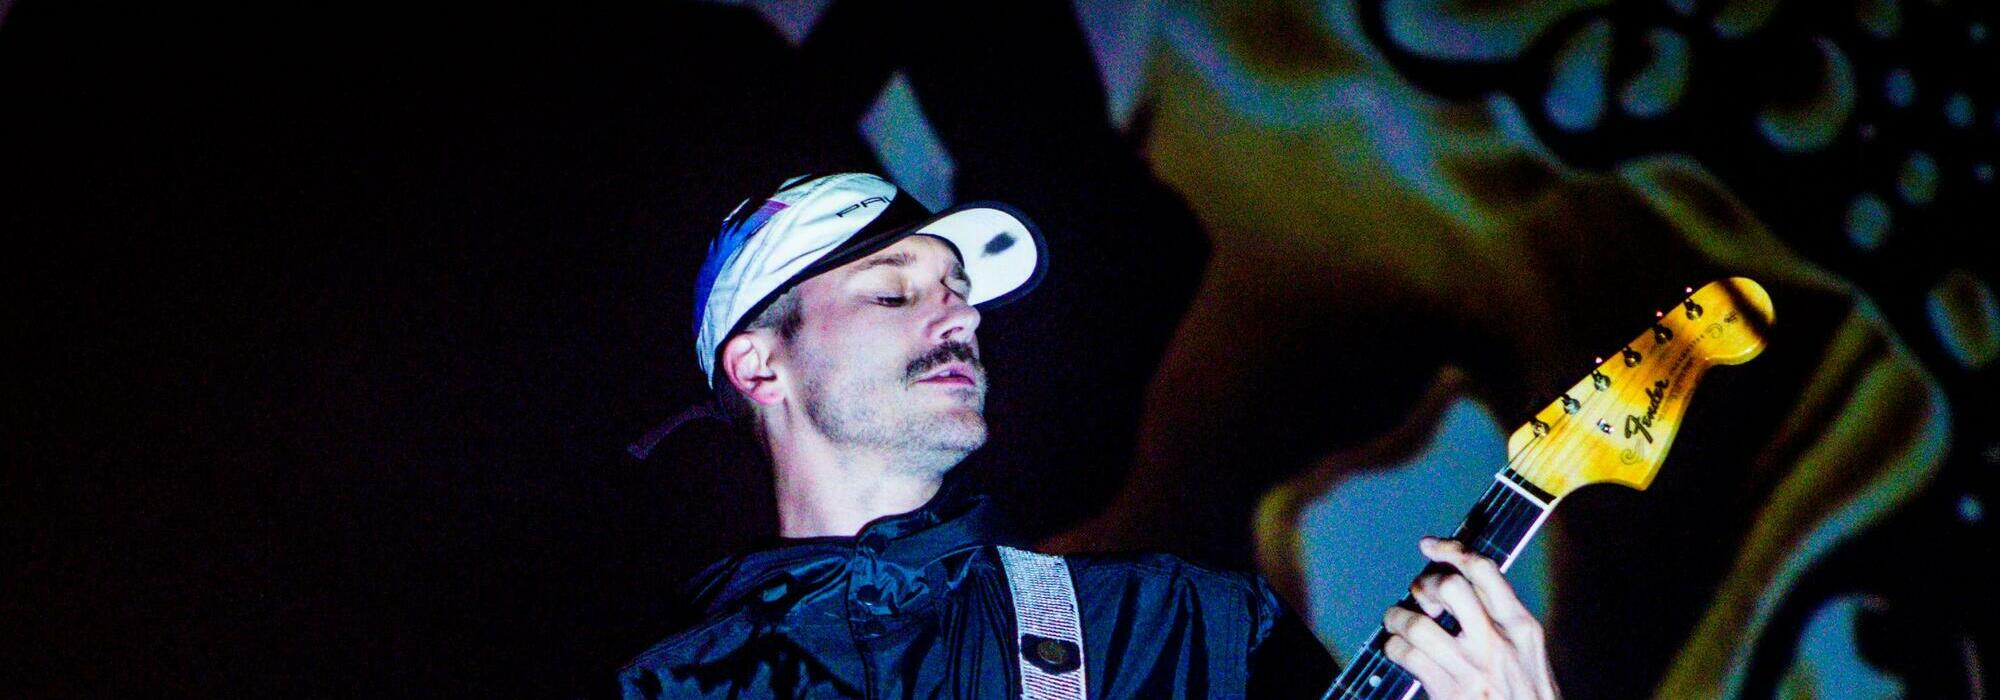 A Portugal. The Man live event